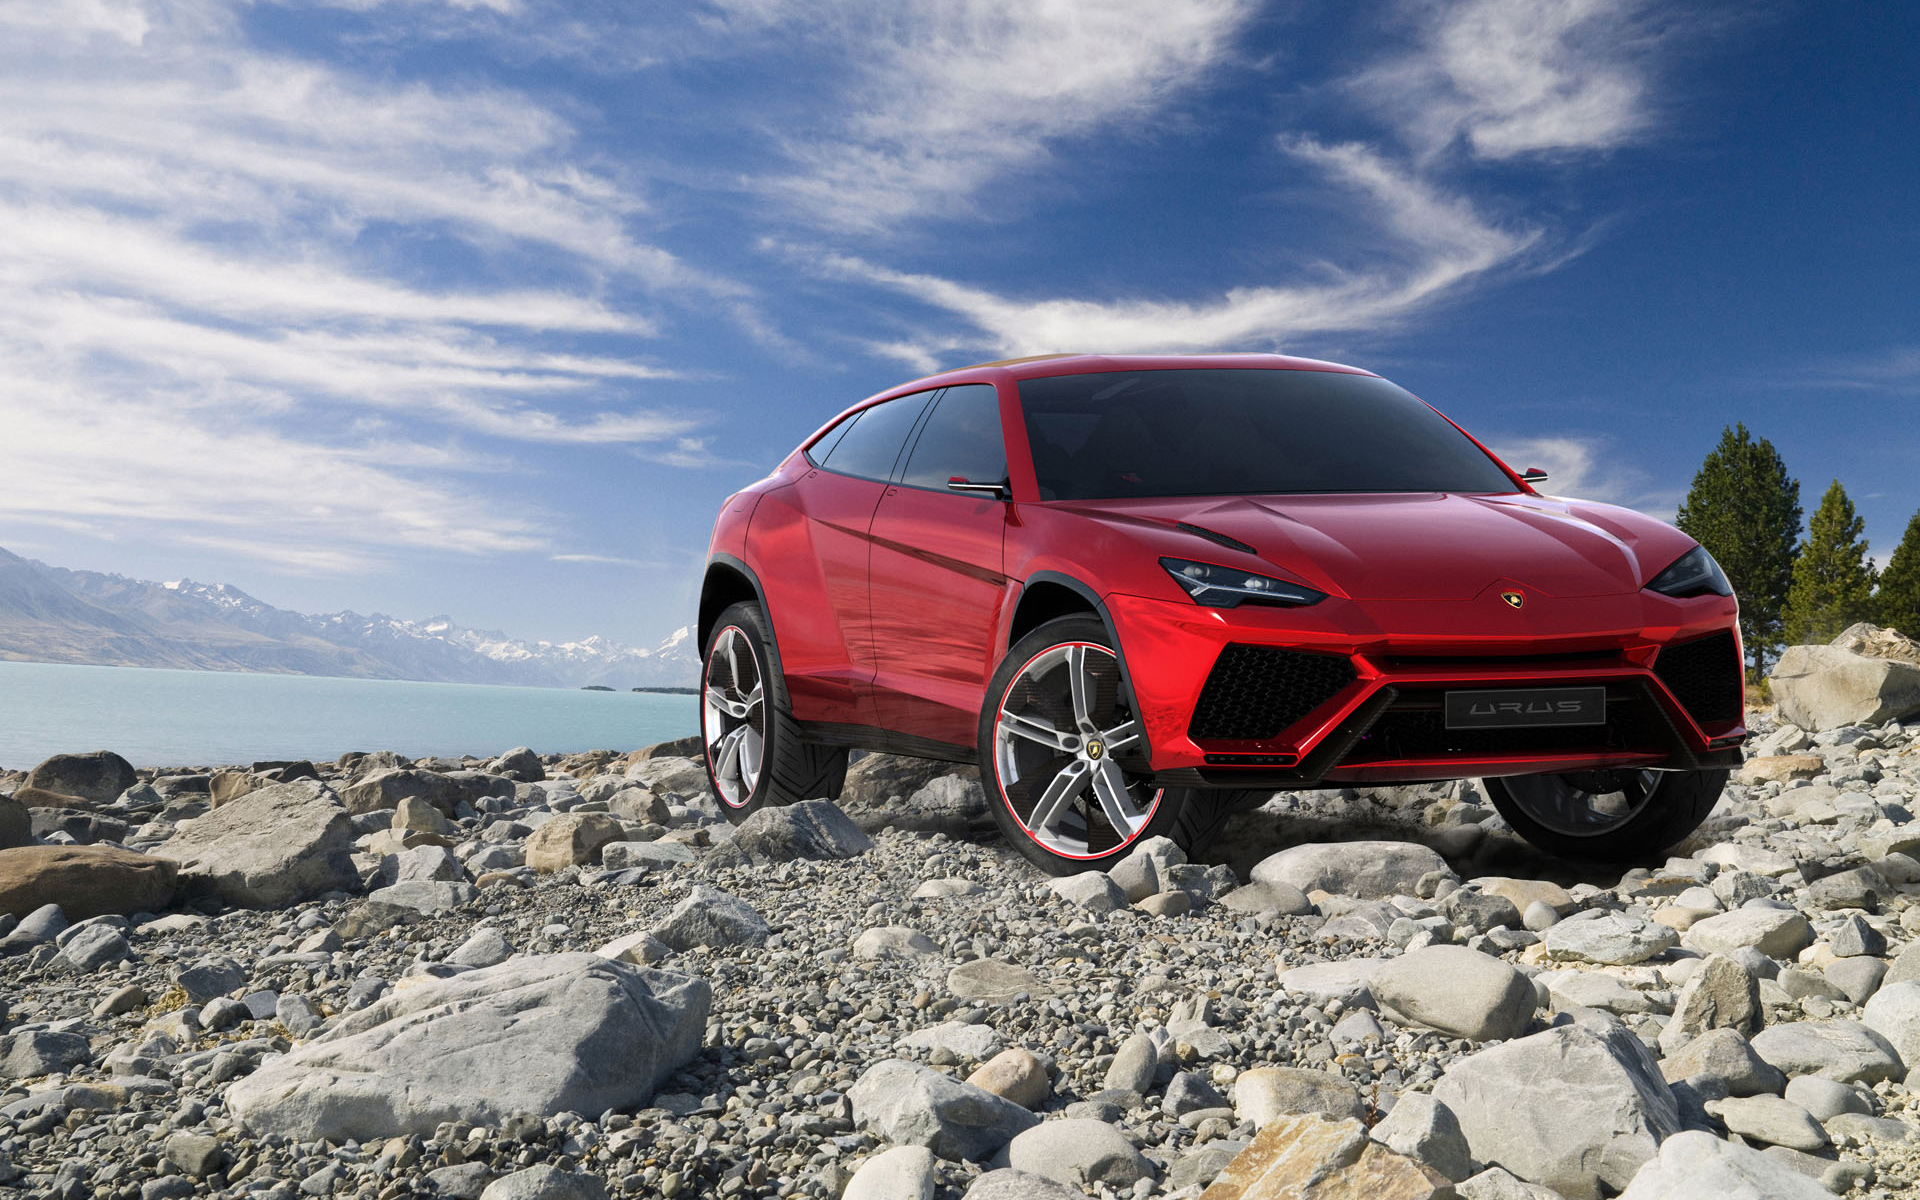 Lamborghini Urus Suv Wallpaper Hd Car Wallpapers Id 2646